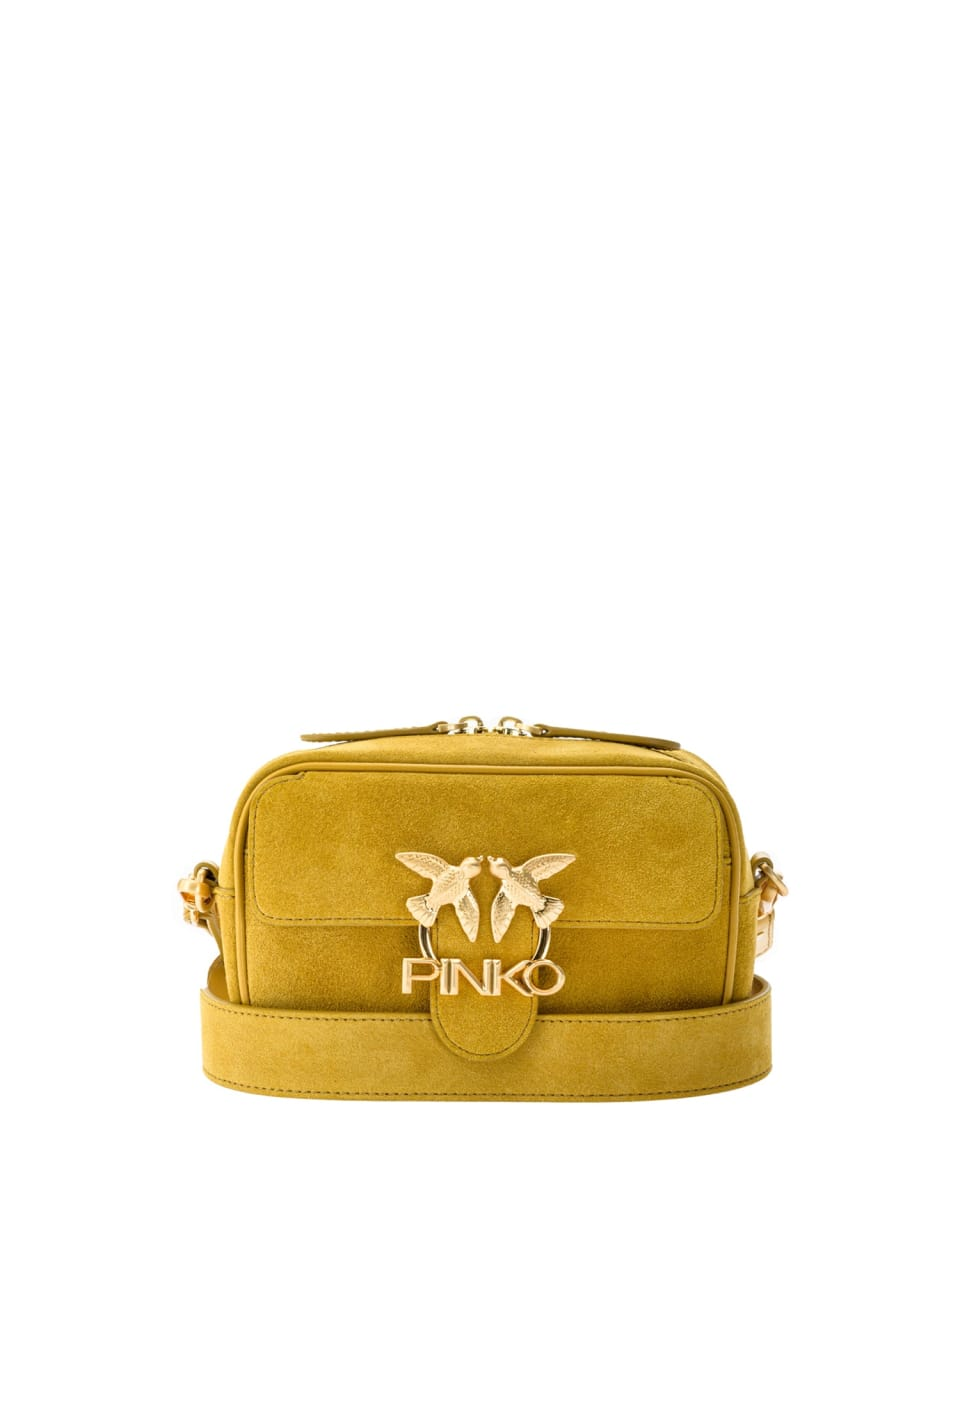 Baby Square Bag Seventies in suede e pelle - Pinko